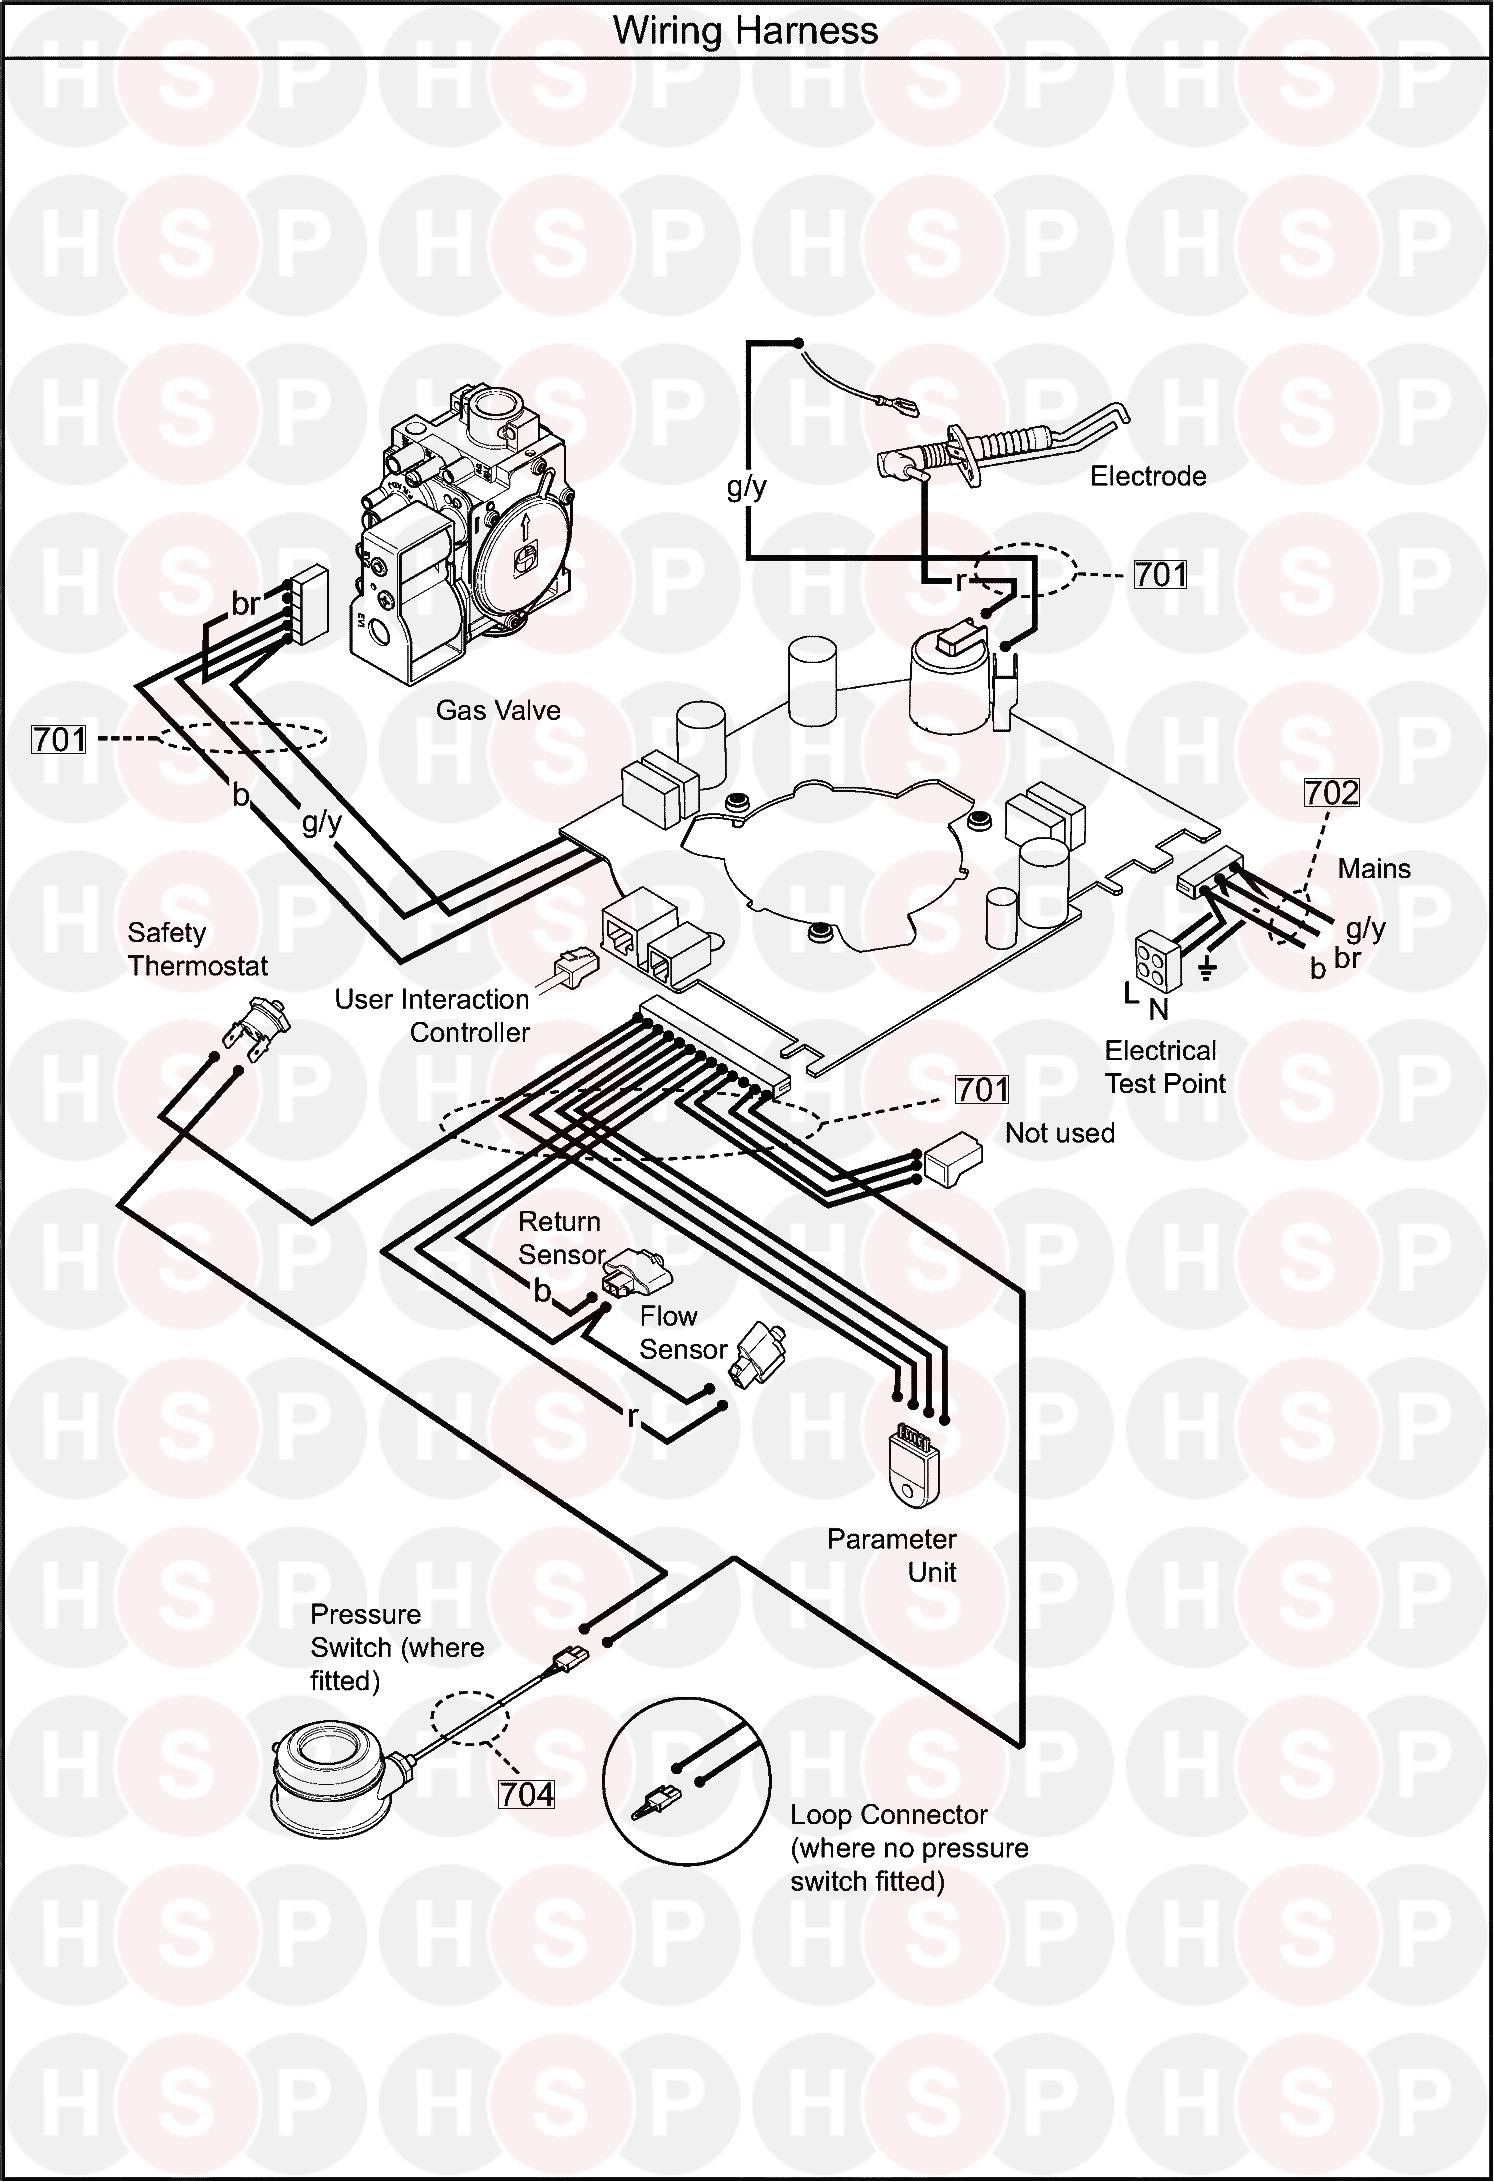 18 Kw Wiring Diagram Library Xs68 Click The To Open It On A New Page